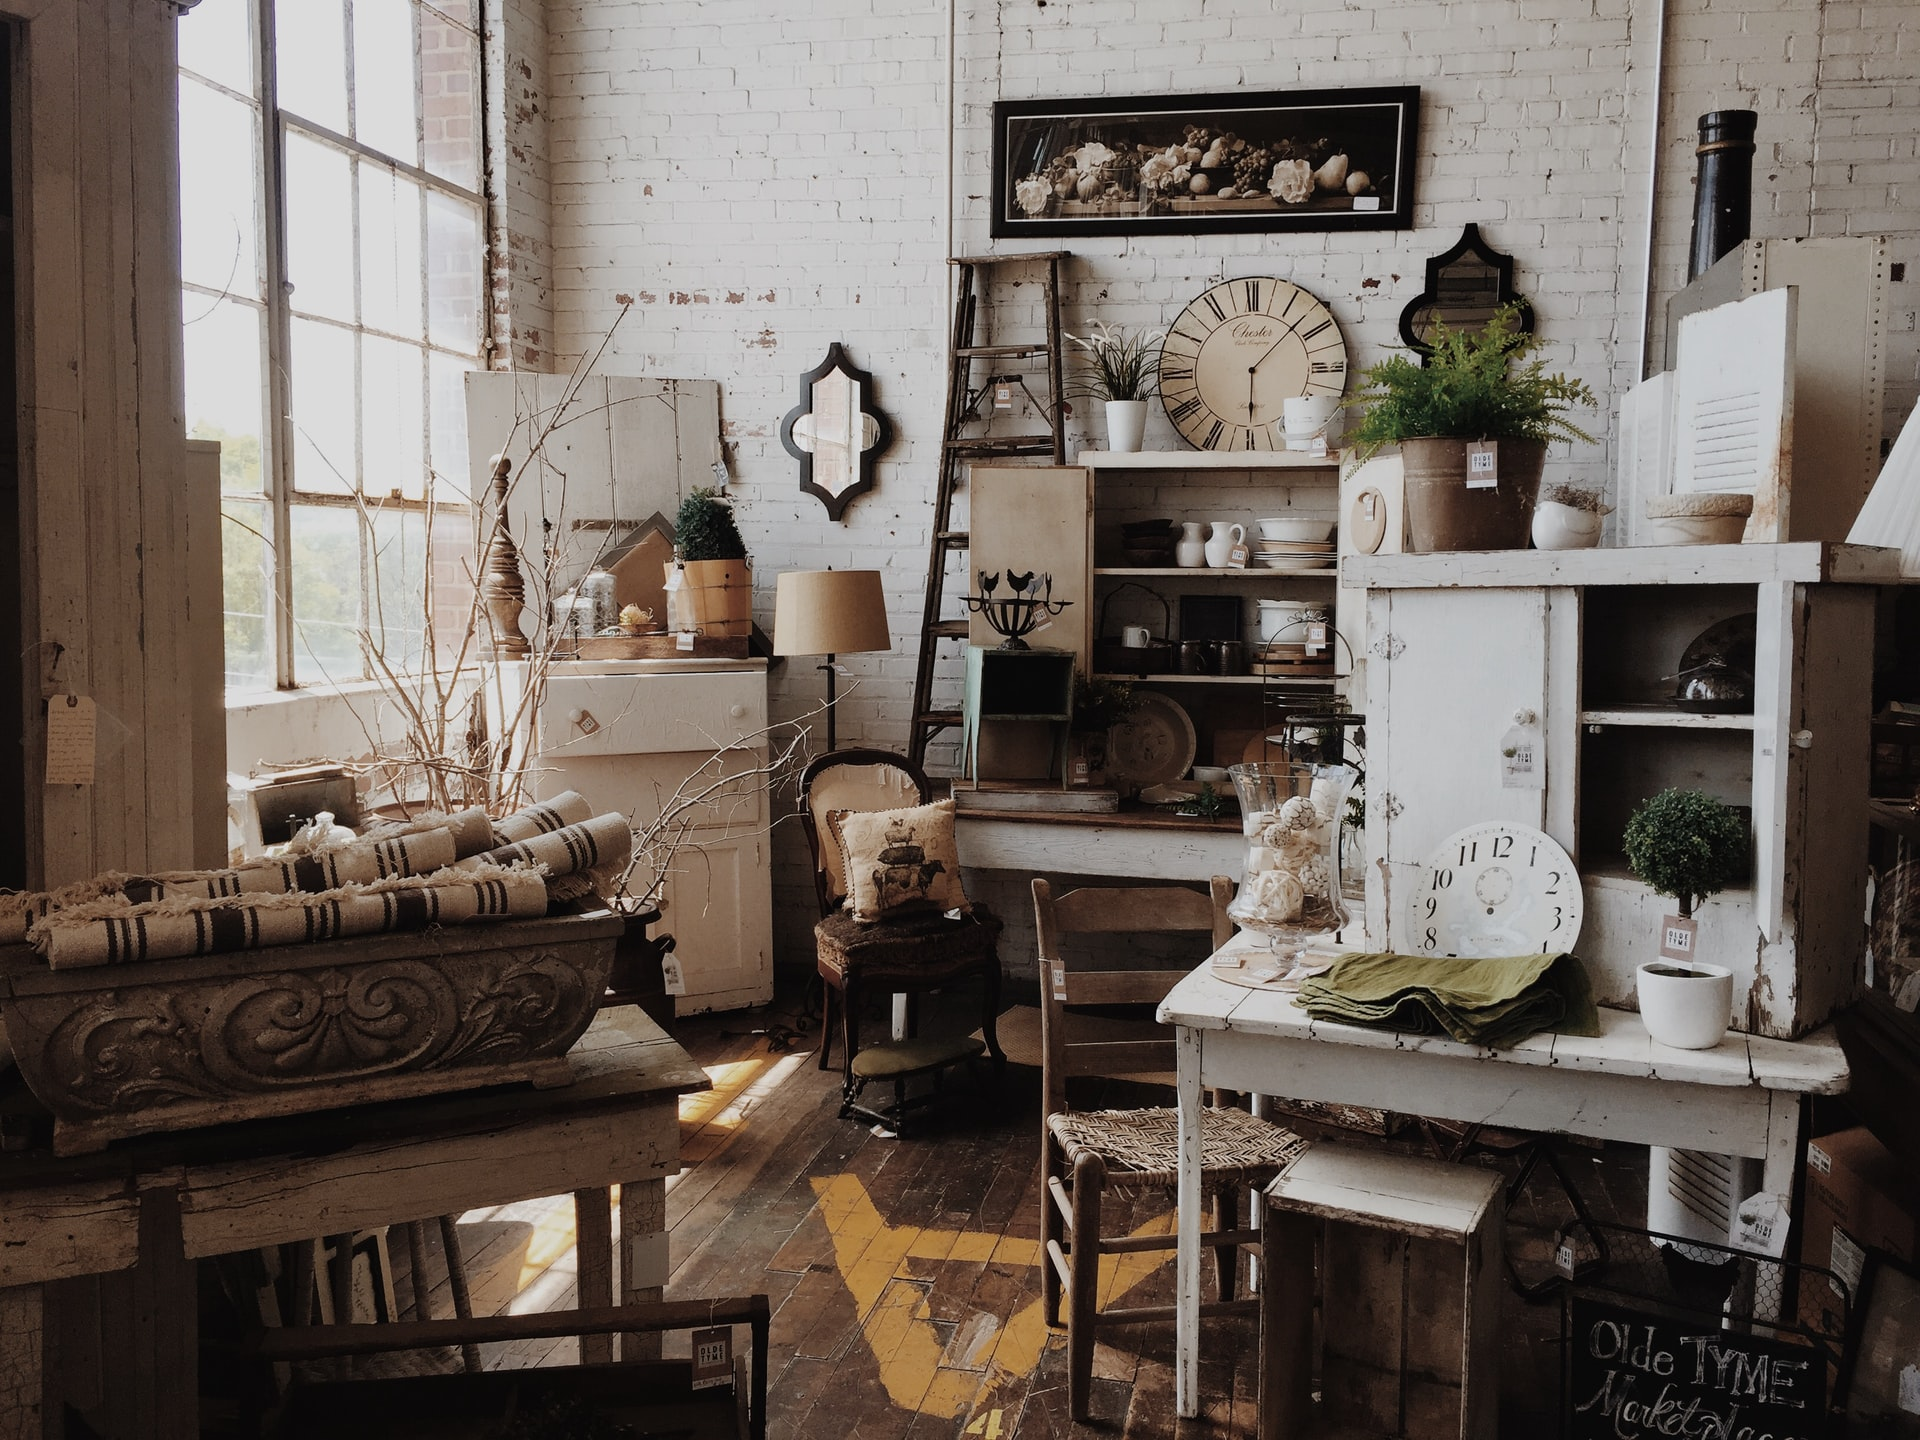 A vintage furniture